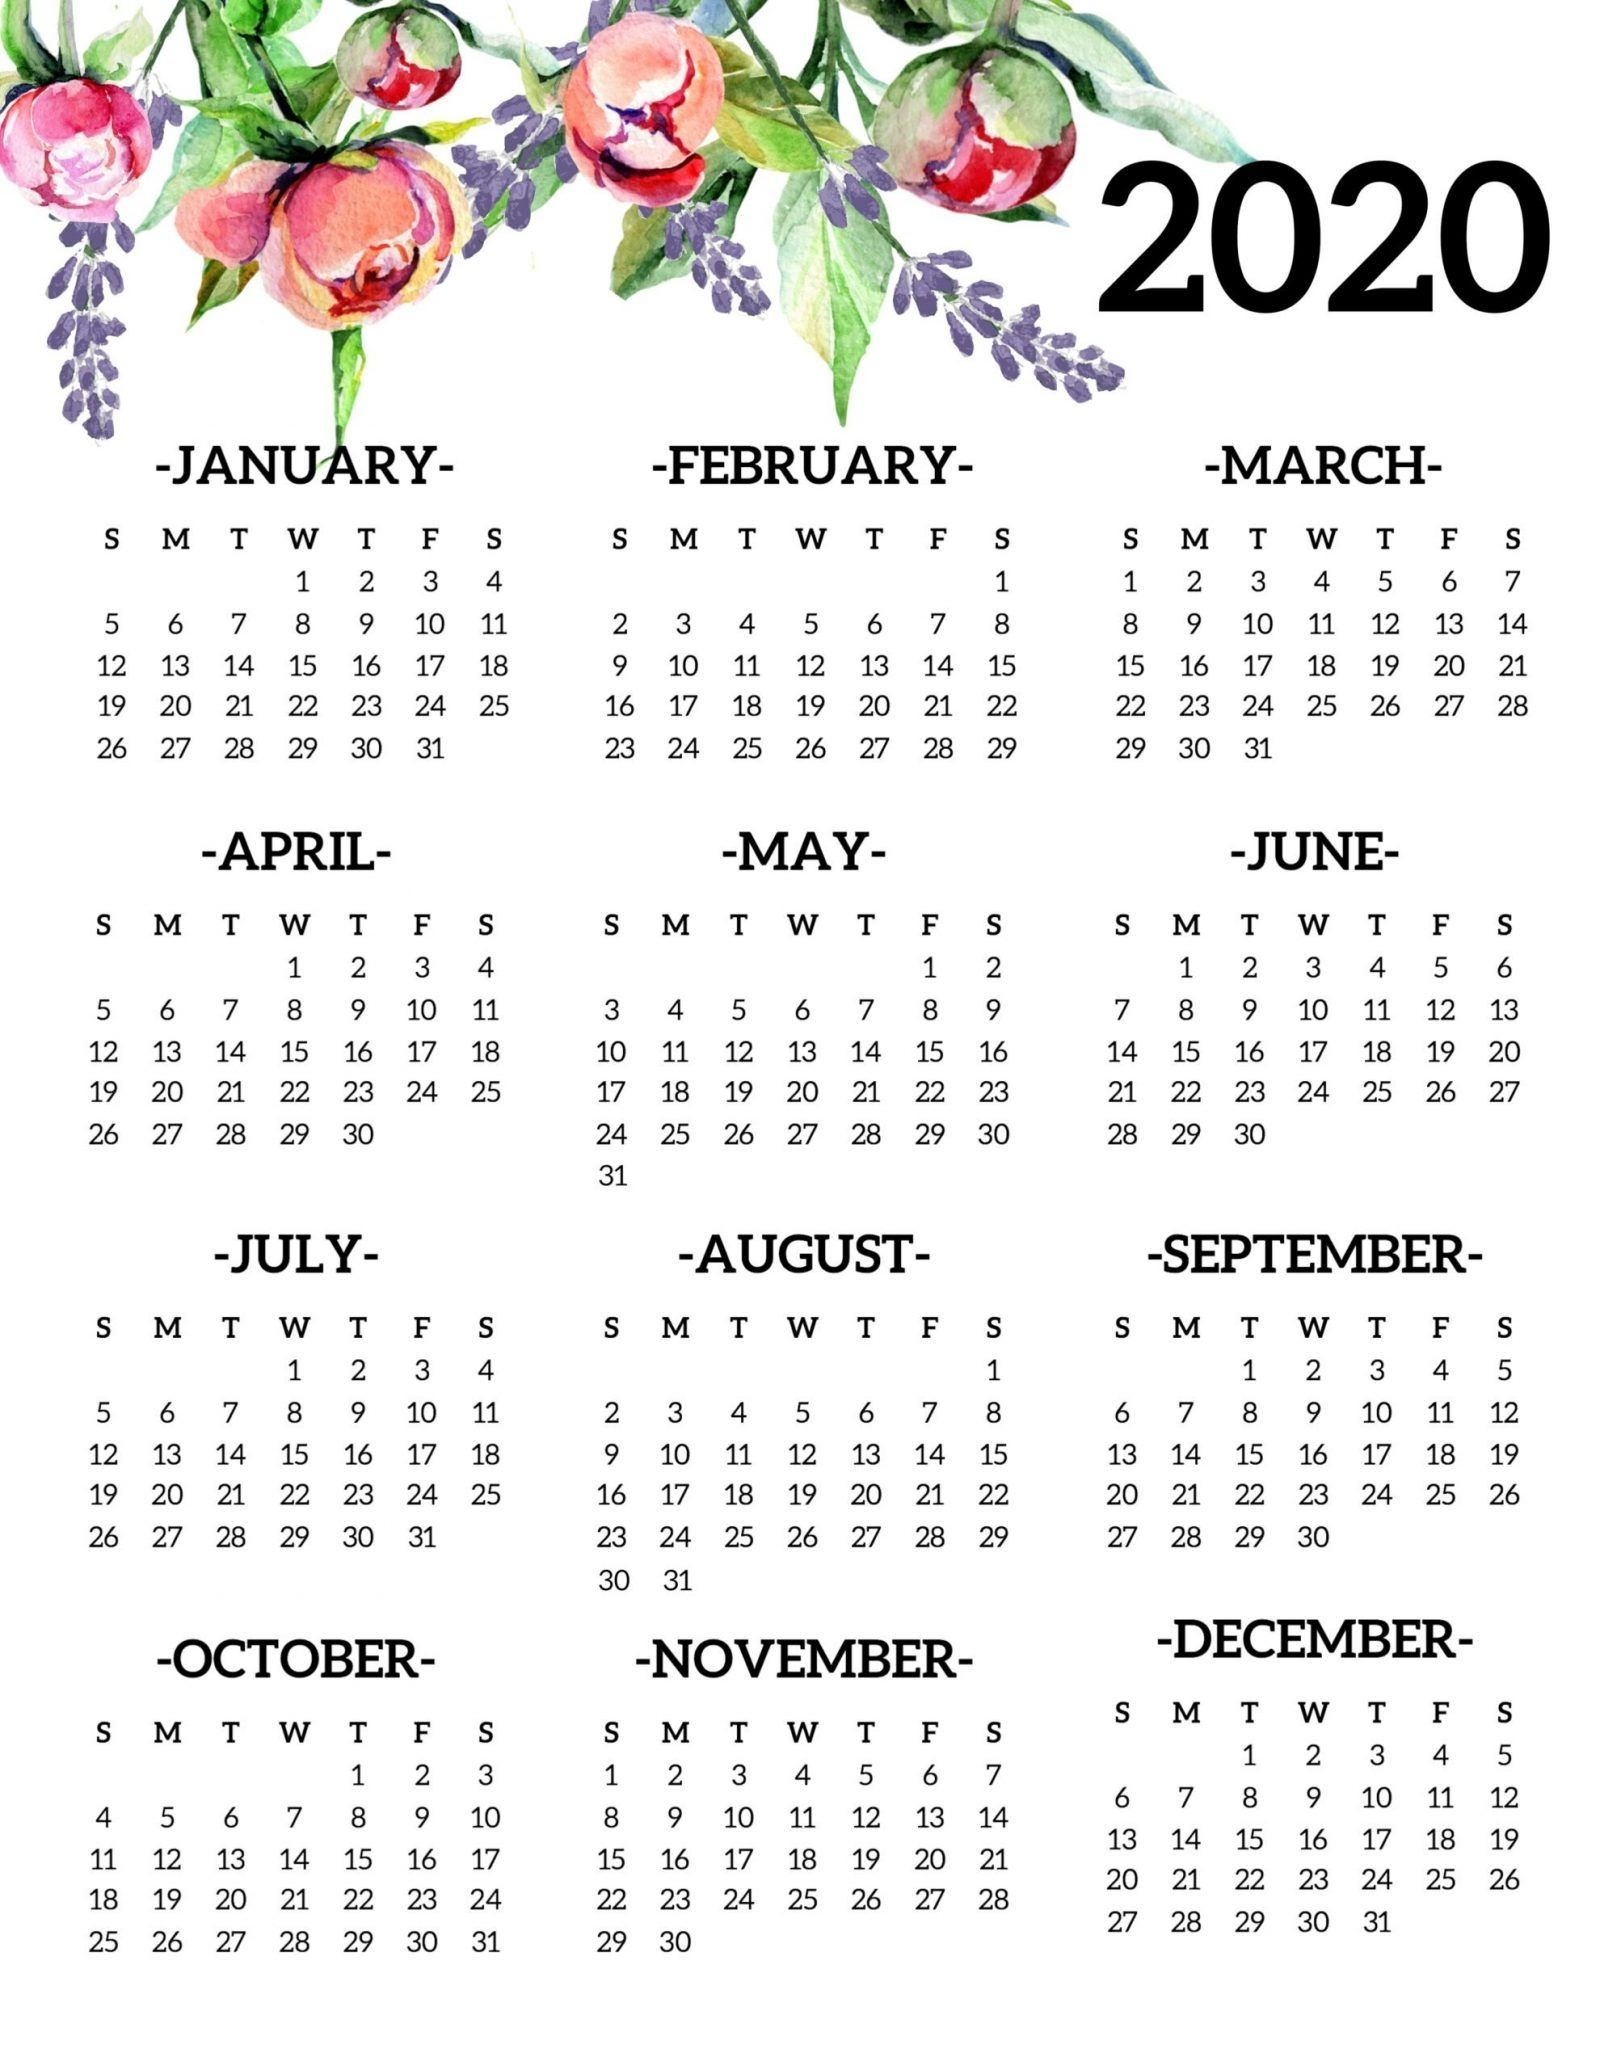 20 Free Printable Calendars For 2020 - Yesmissy In 2020 regarding 2020 At A Glance Calendar